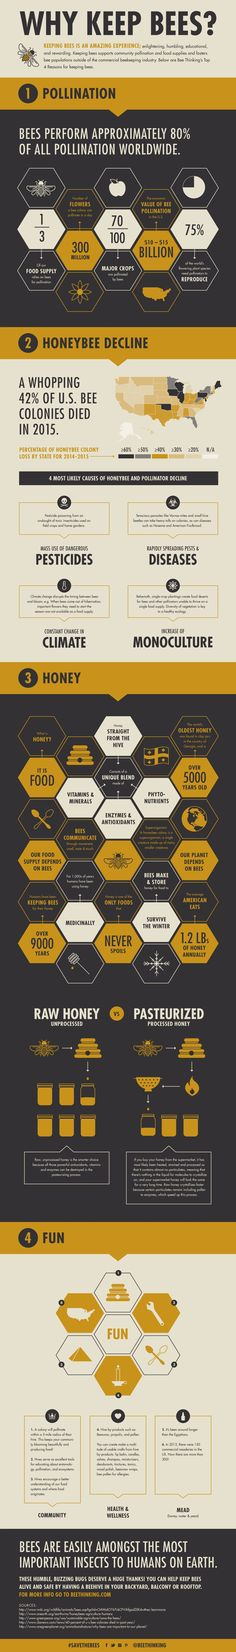 Beekeeping for Beginners: Why Keep Bees? Designed by Murmur Creative